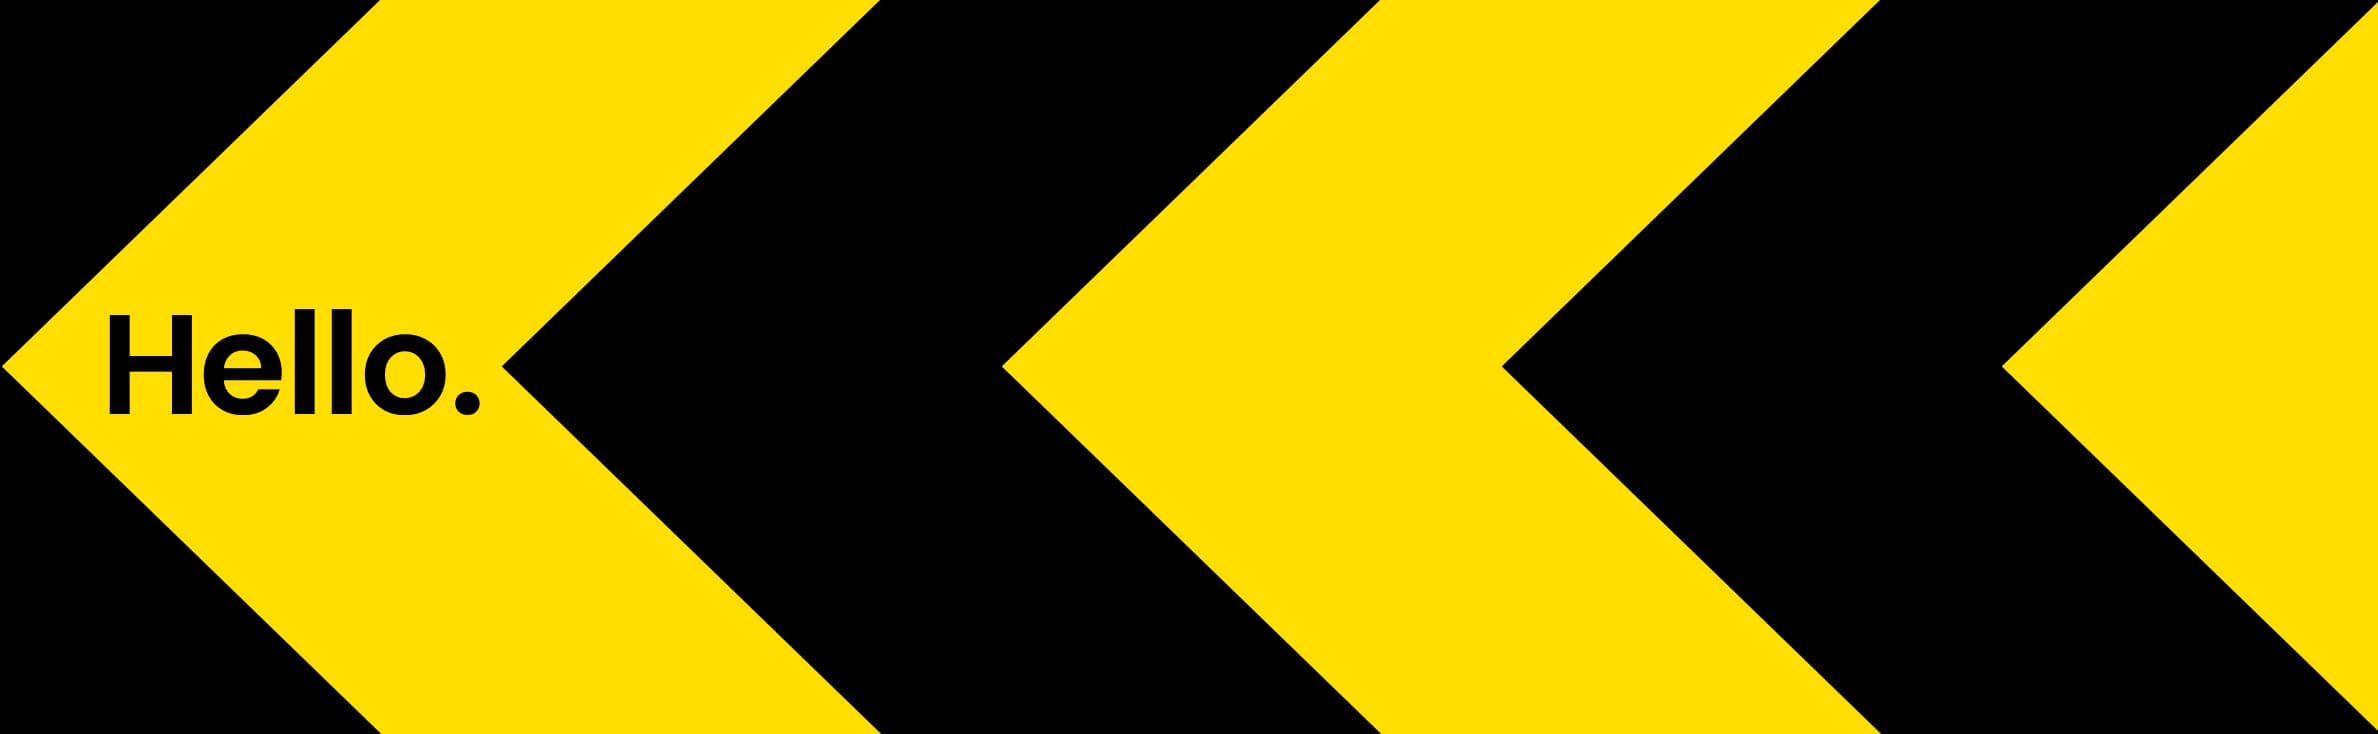 black and yellow arrows pointing left